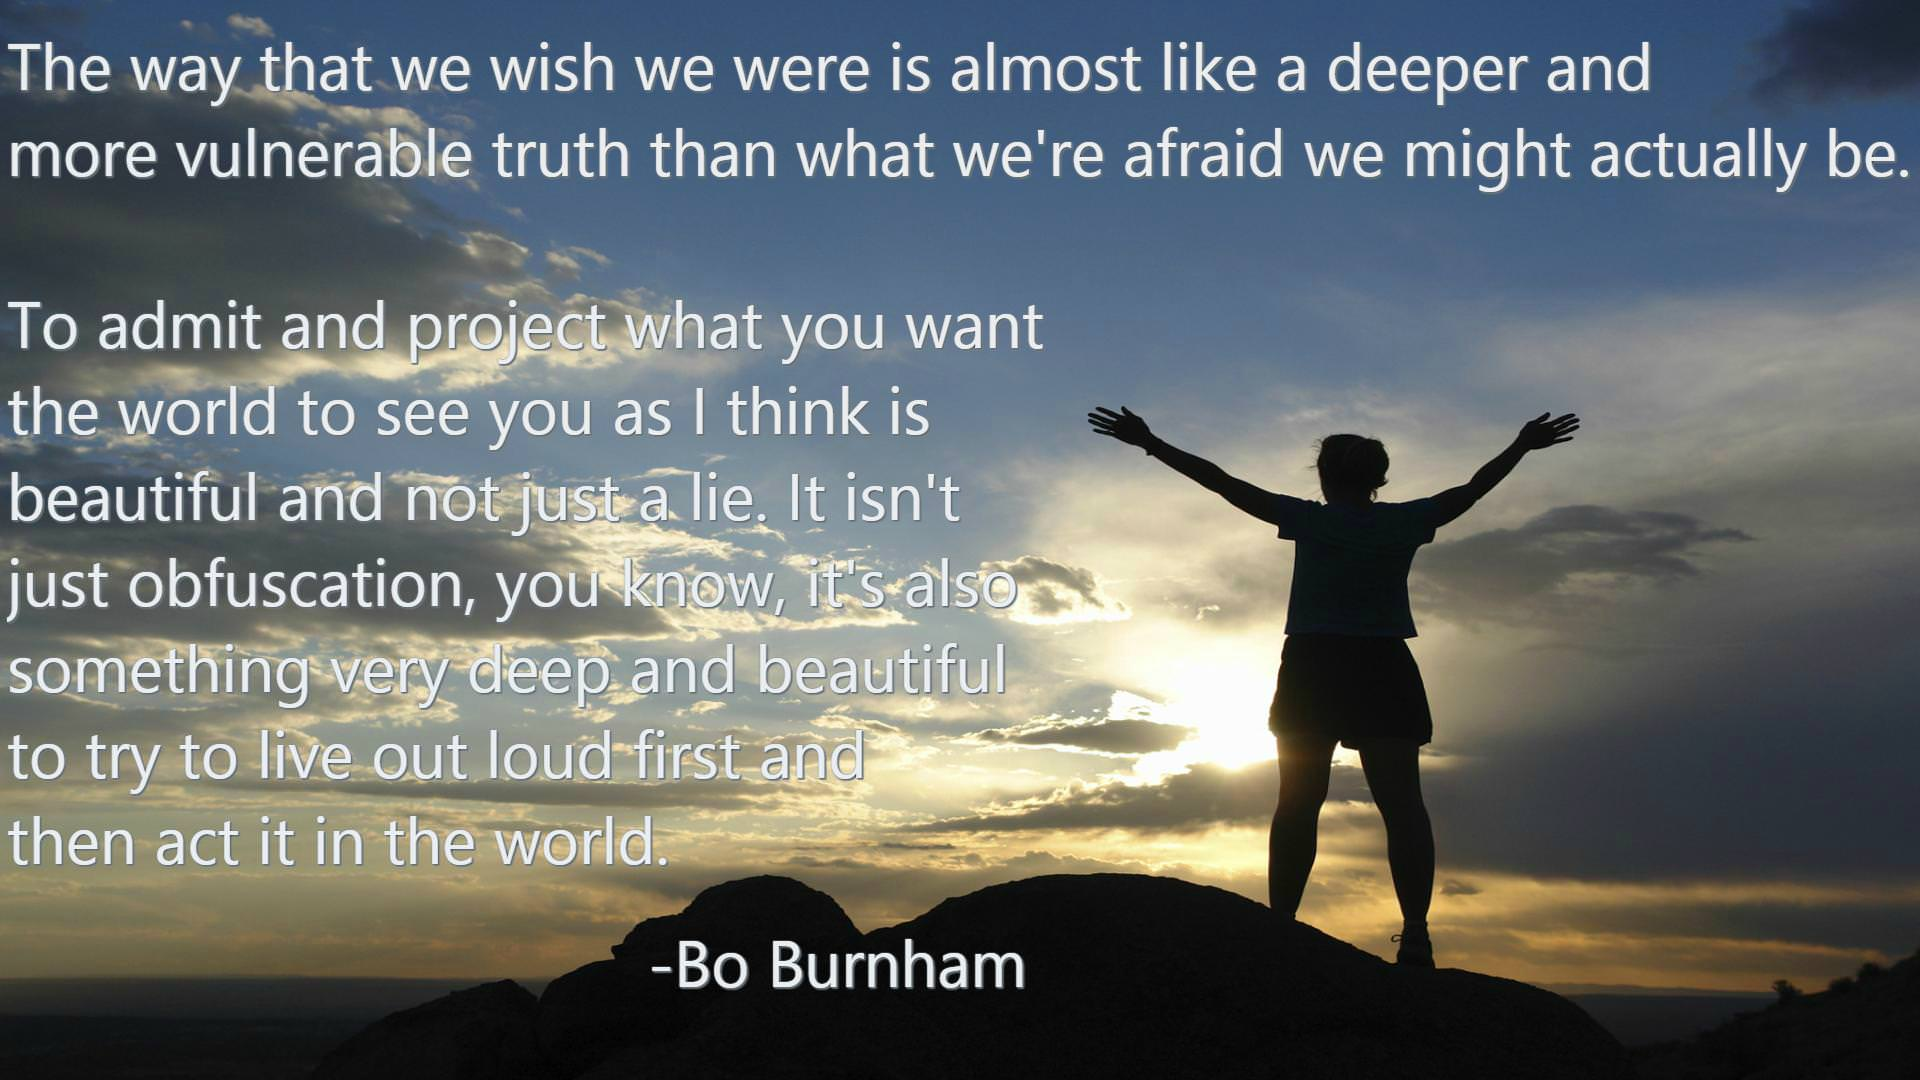 """The way that we wish we were is almost like a deeper and more vulnerable truth than what we're afraid we might actually be."" – Bo Burnham [1920×1080]"